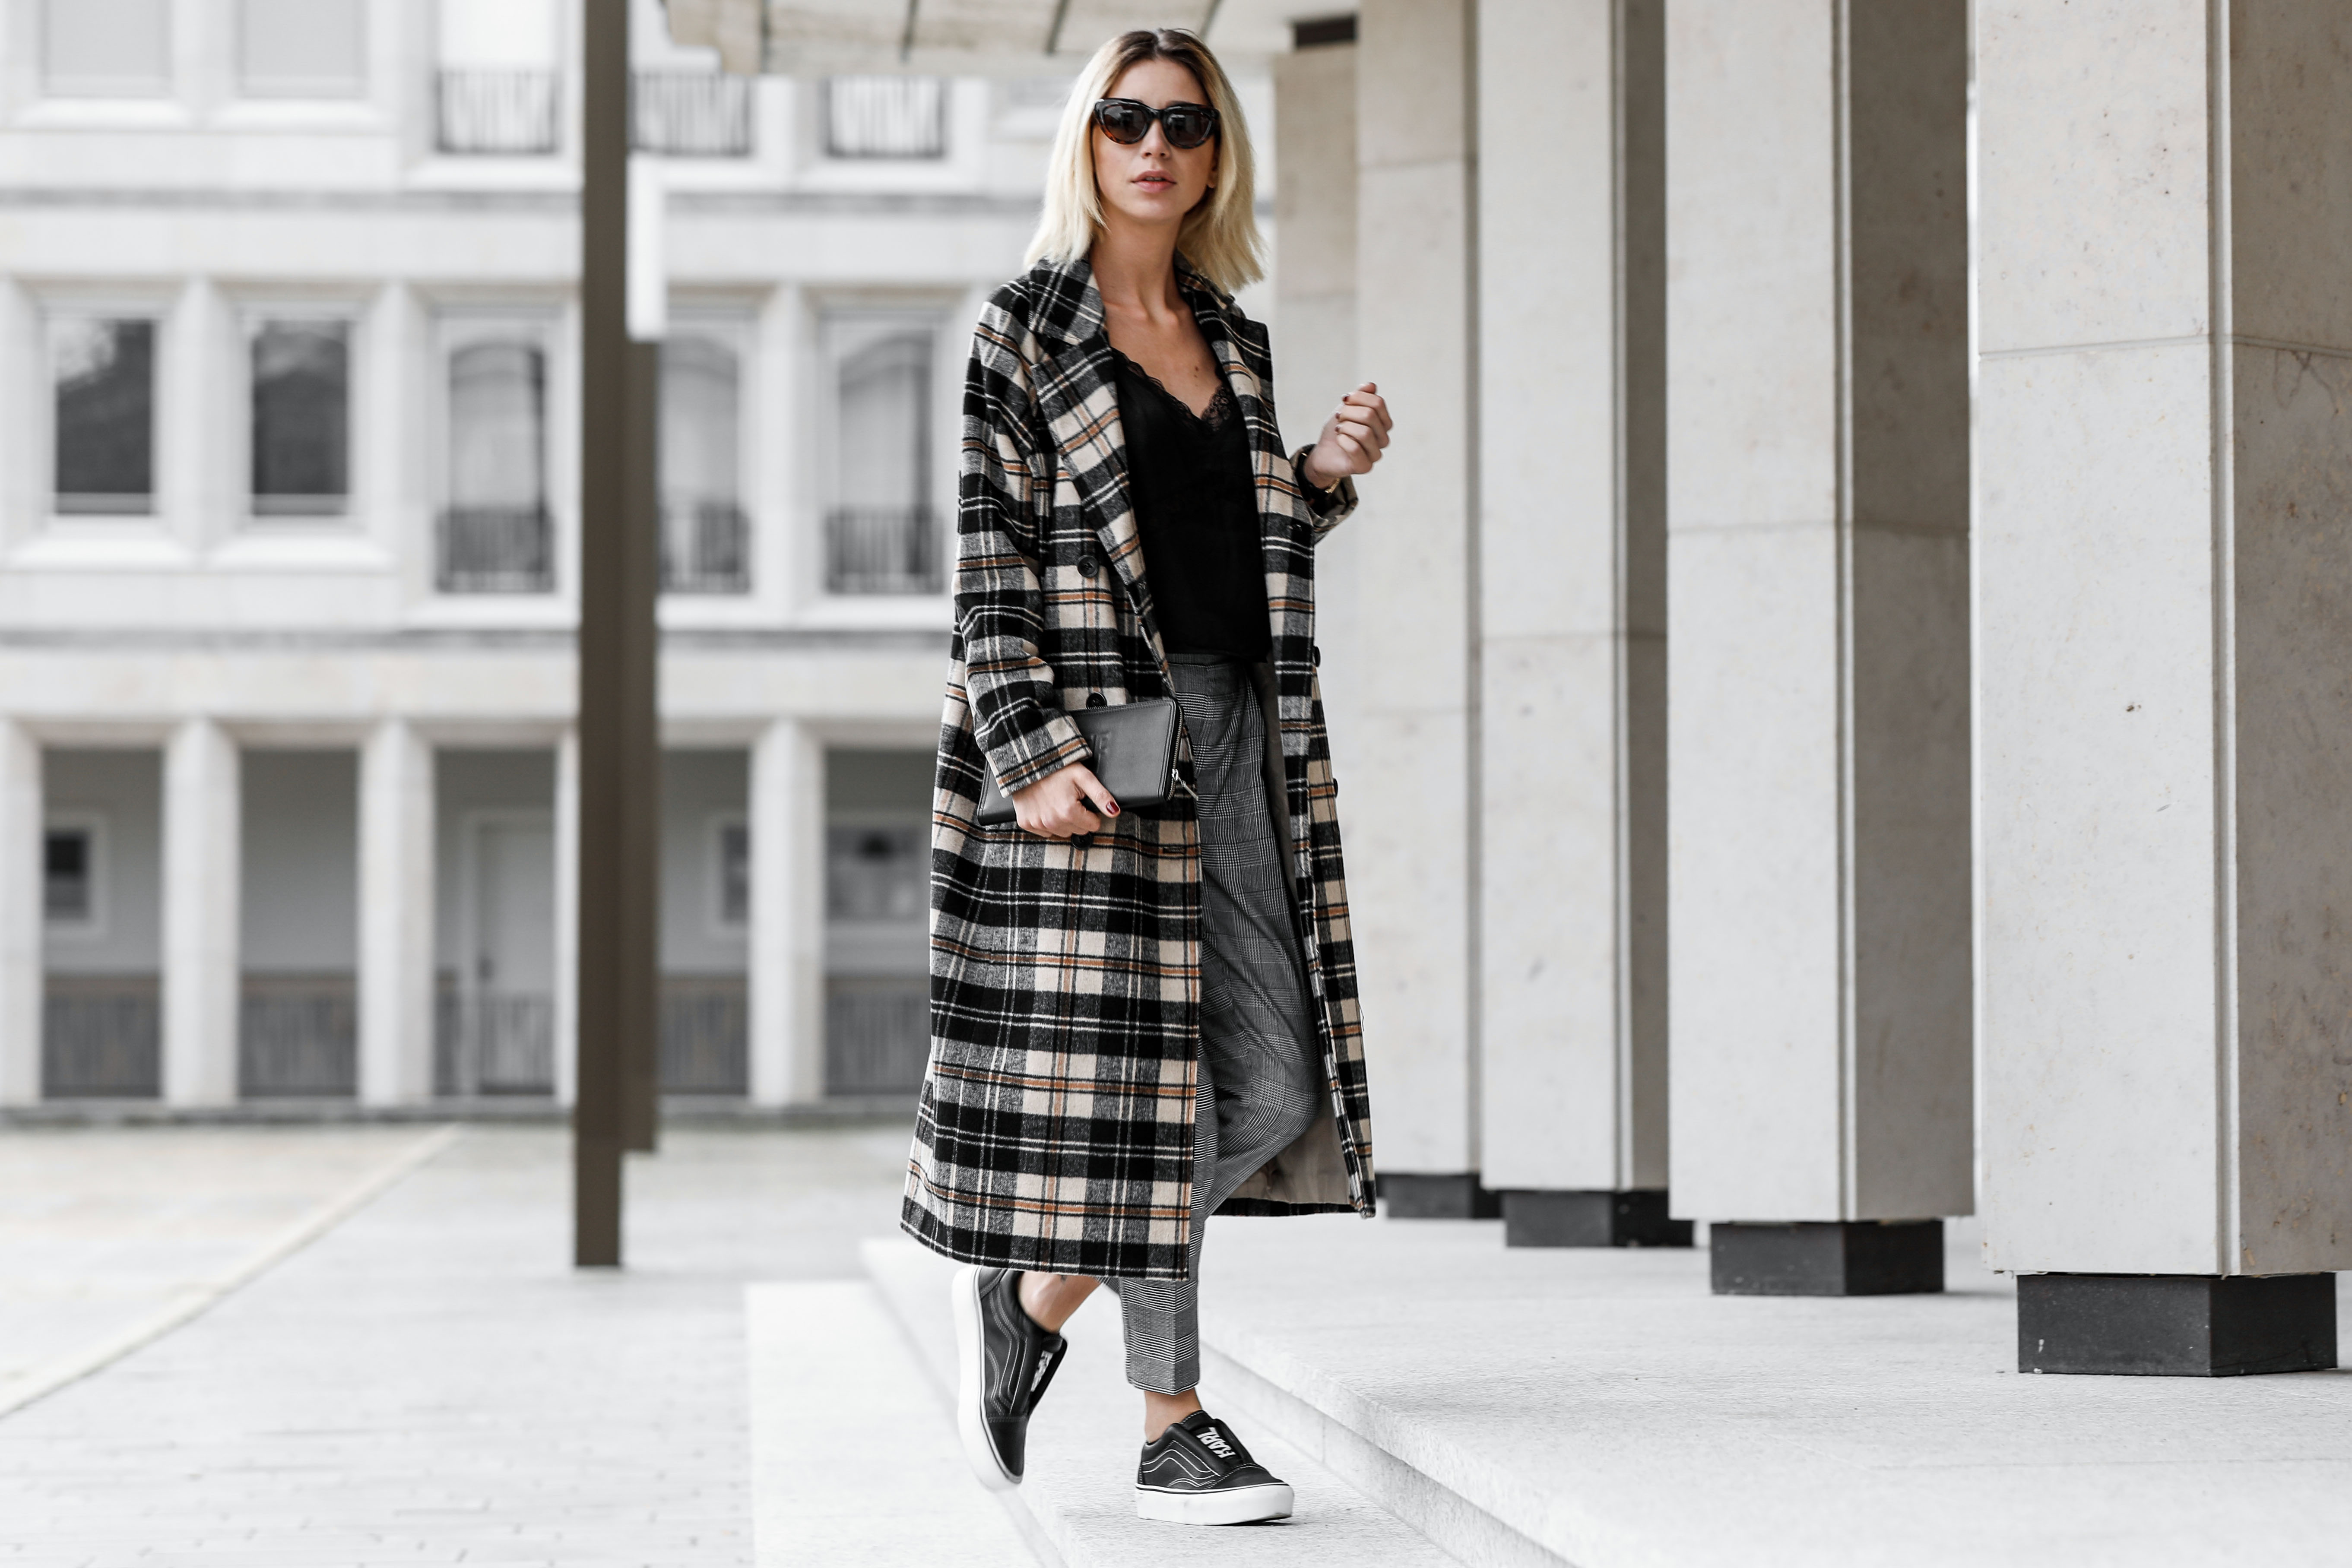 vans-karl-lagerfeld-fashion-blog-modeblog-outfit-streetstyle-herbst-2017